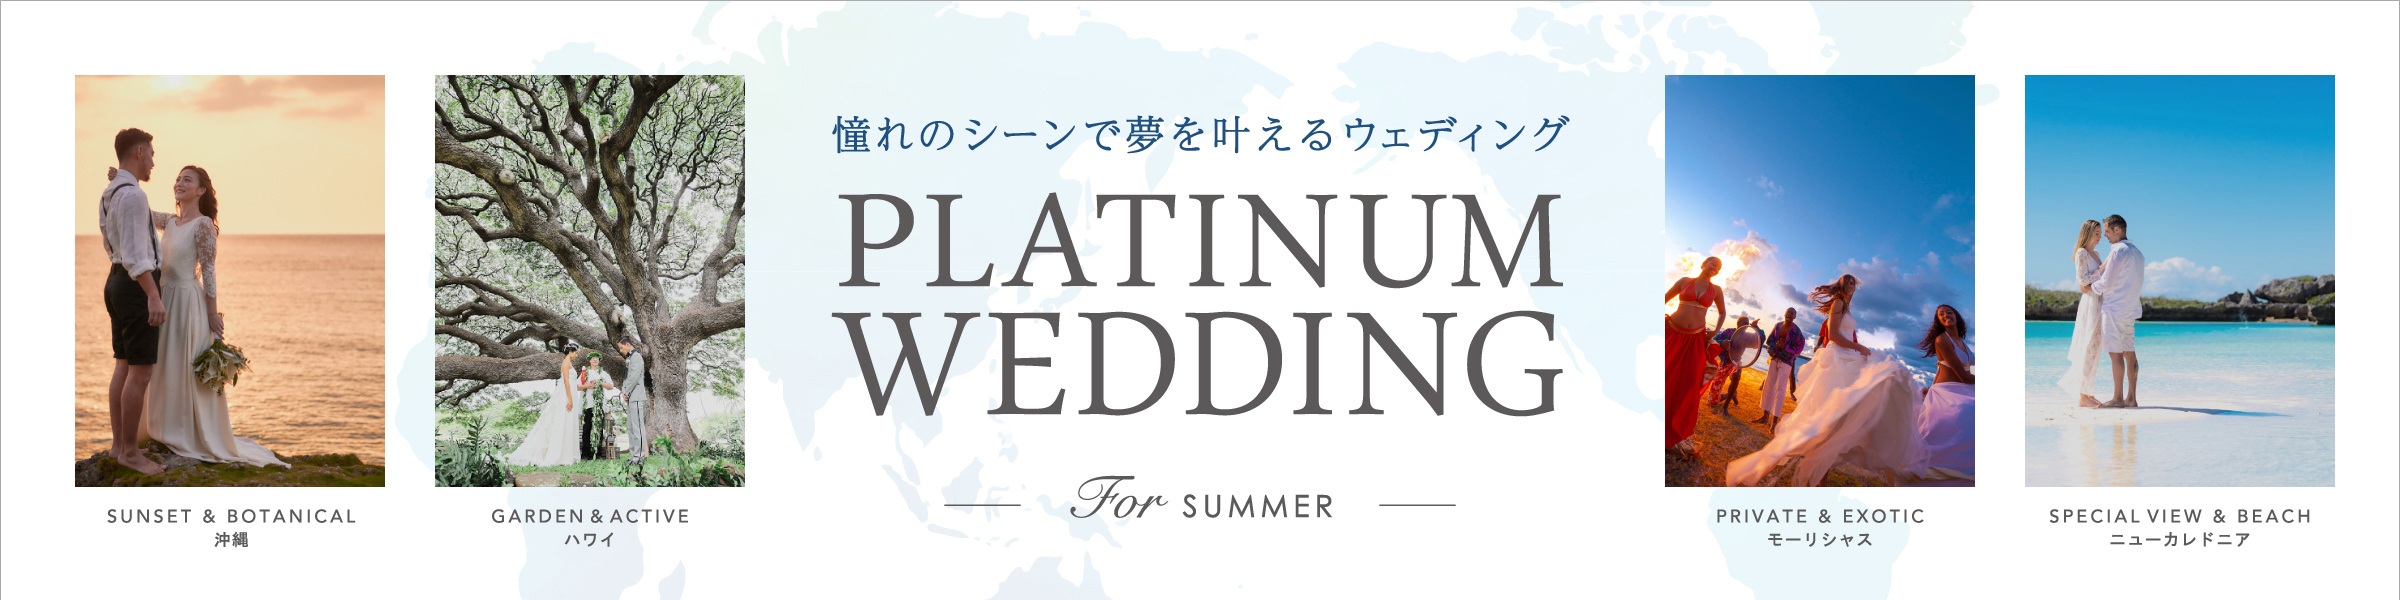 PLATINUM WEDDING For SUMMER